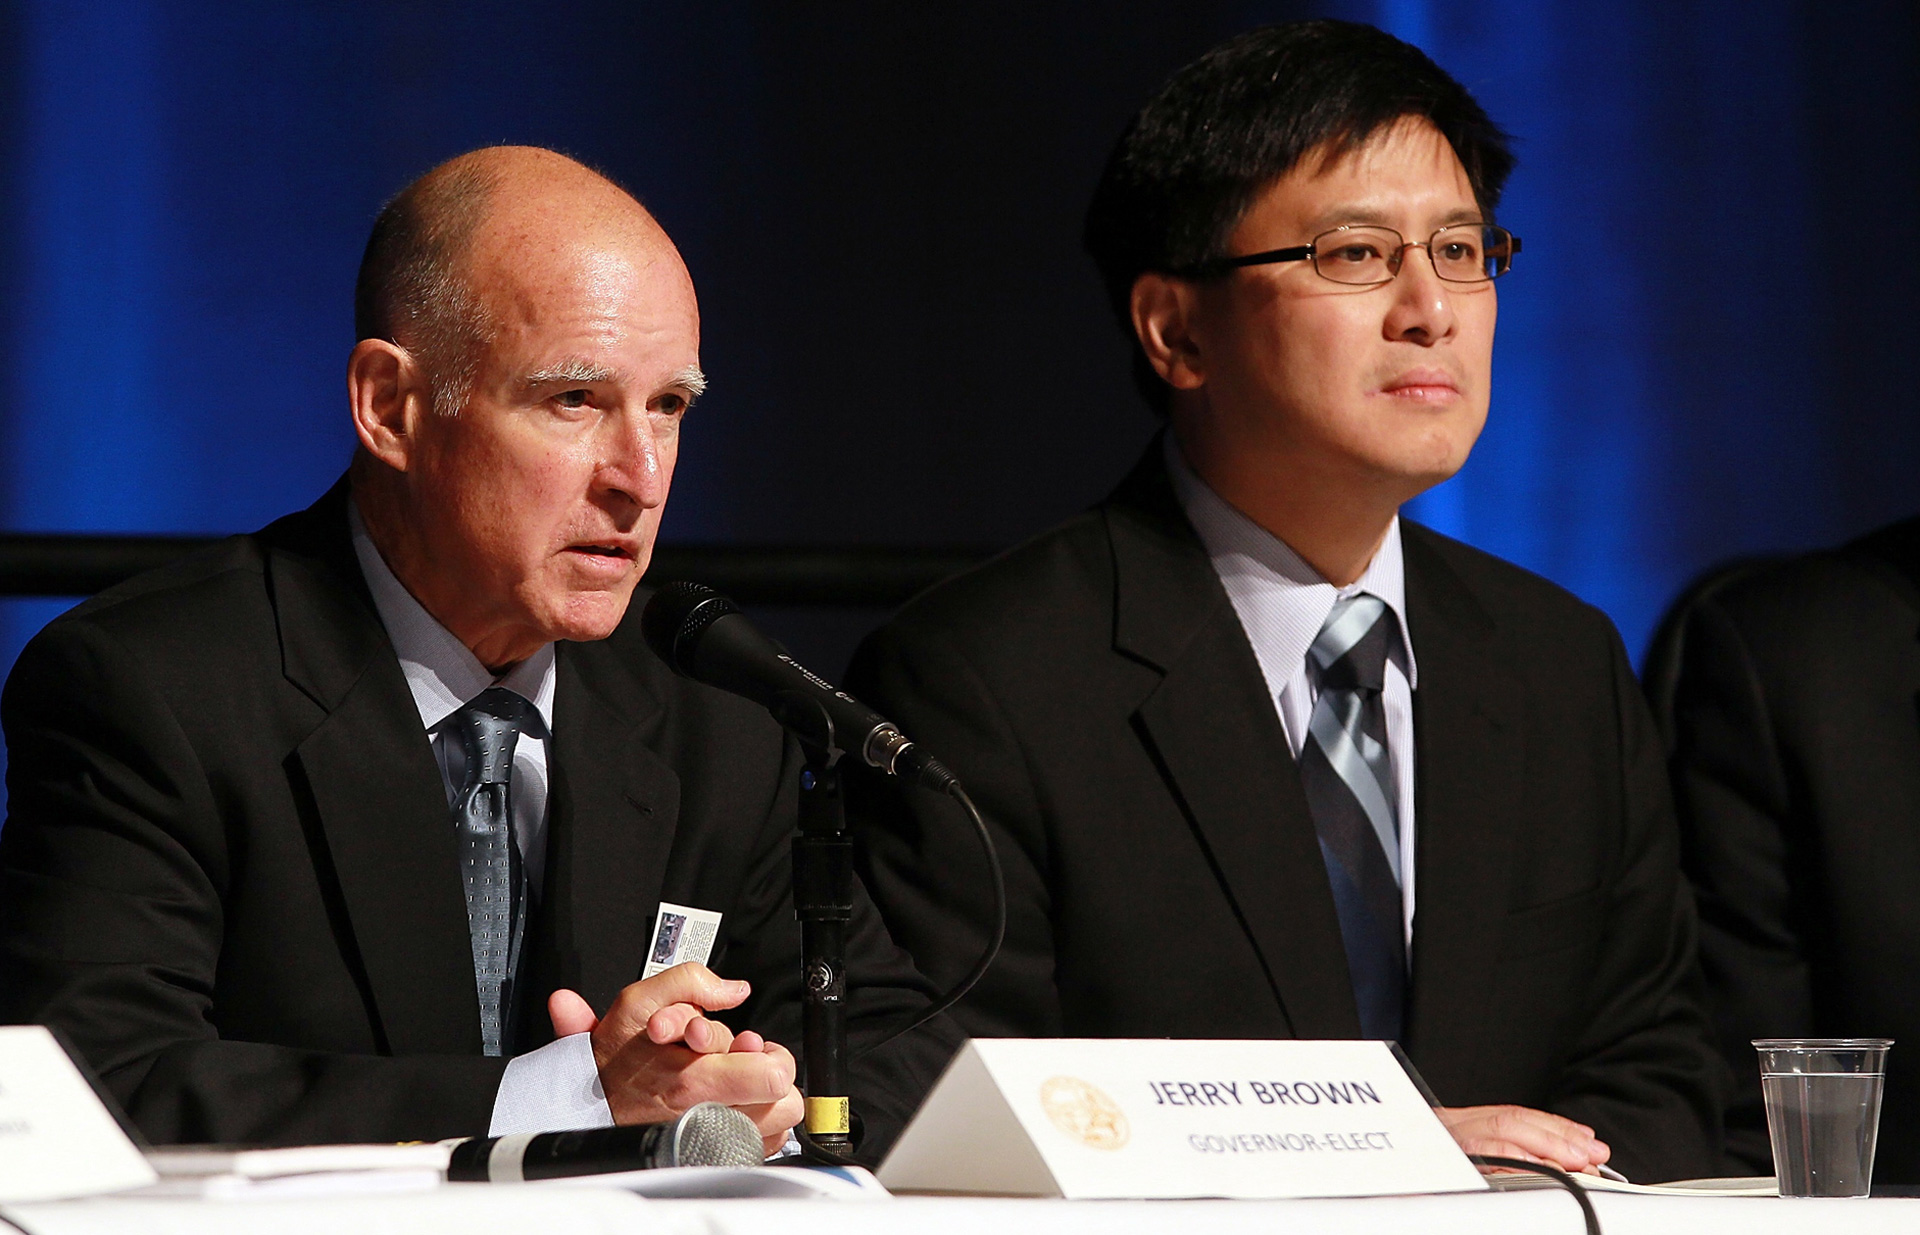 John Chiang looks on as then governor-elect Jerry Brown speaks during a state budget briefing on December 8, 2010.